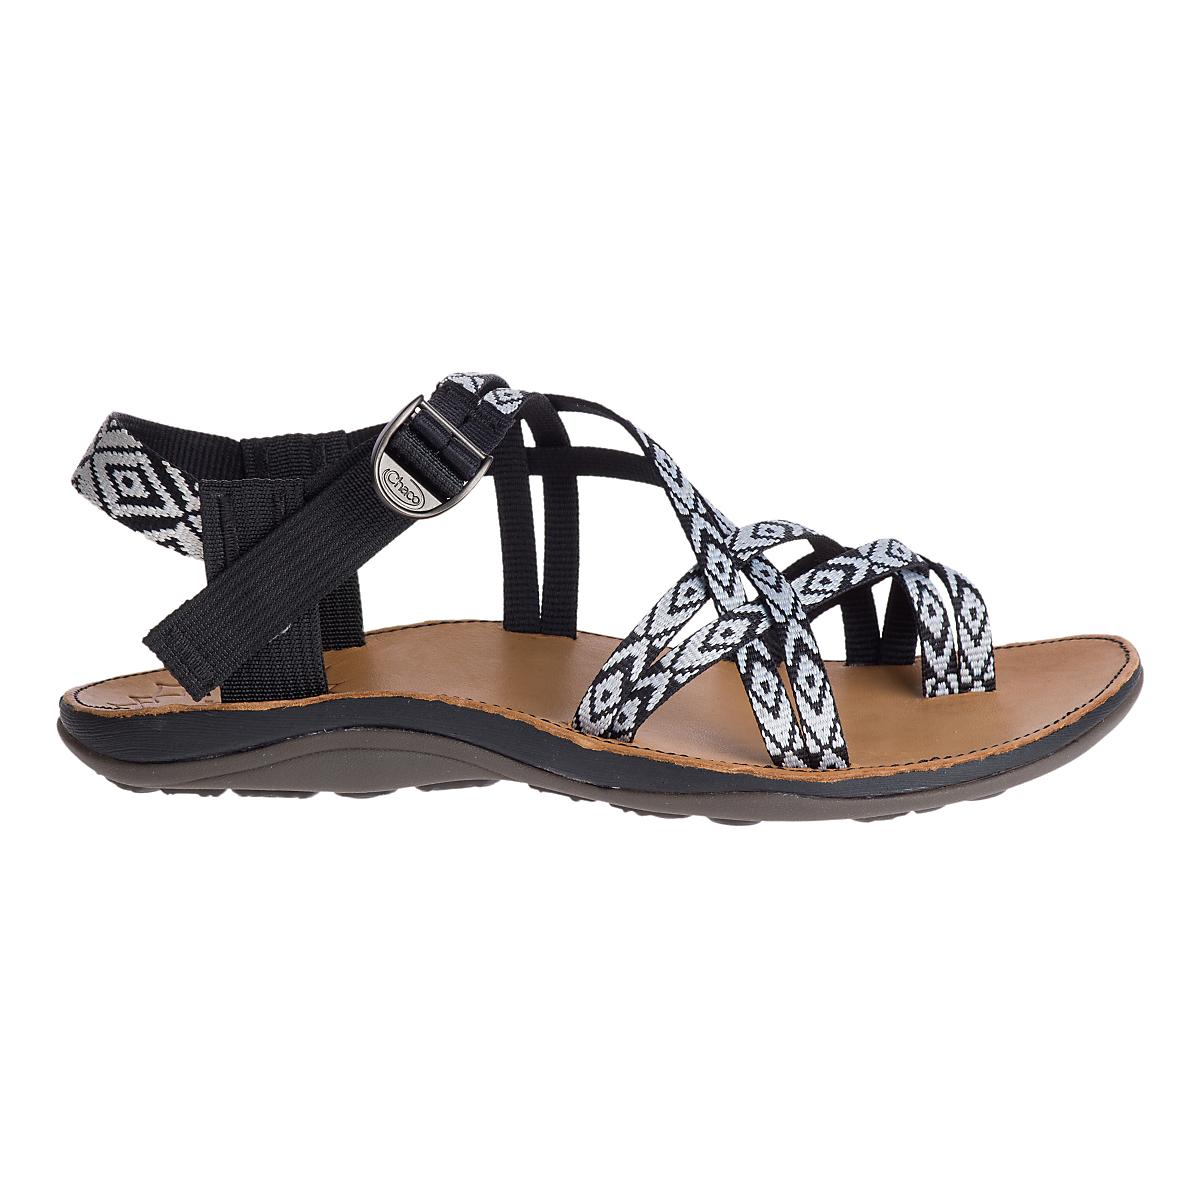 e492dd22f190 Womens Chaco Diana Sandals Shoe at Road Runner Sports